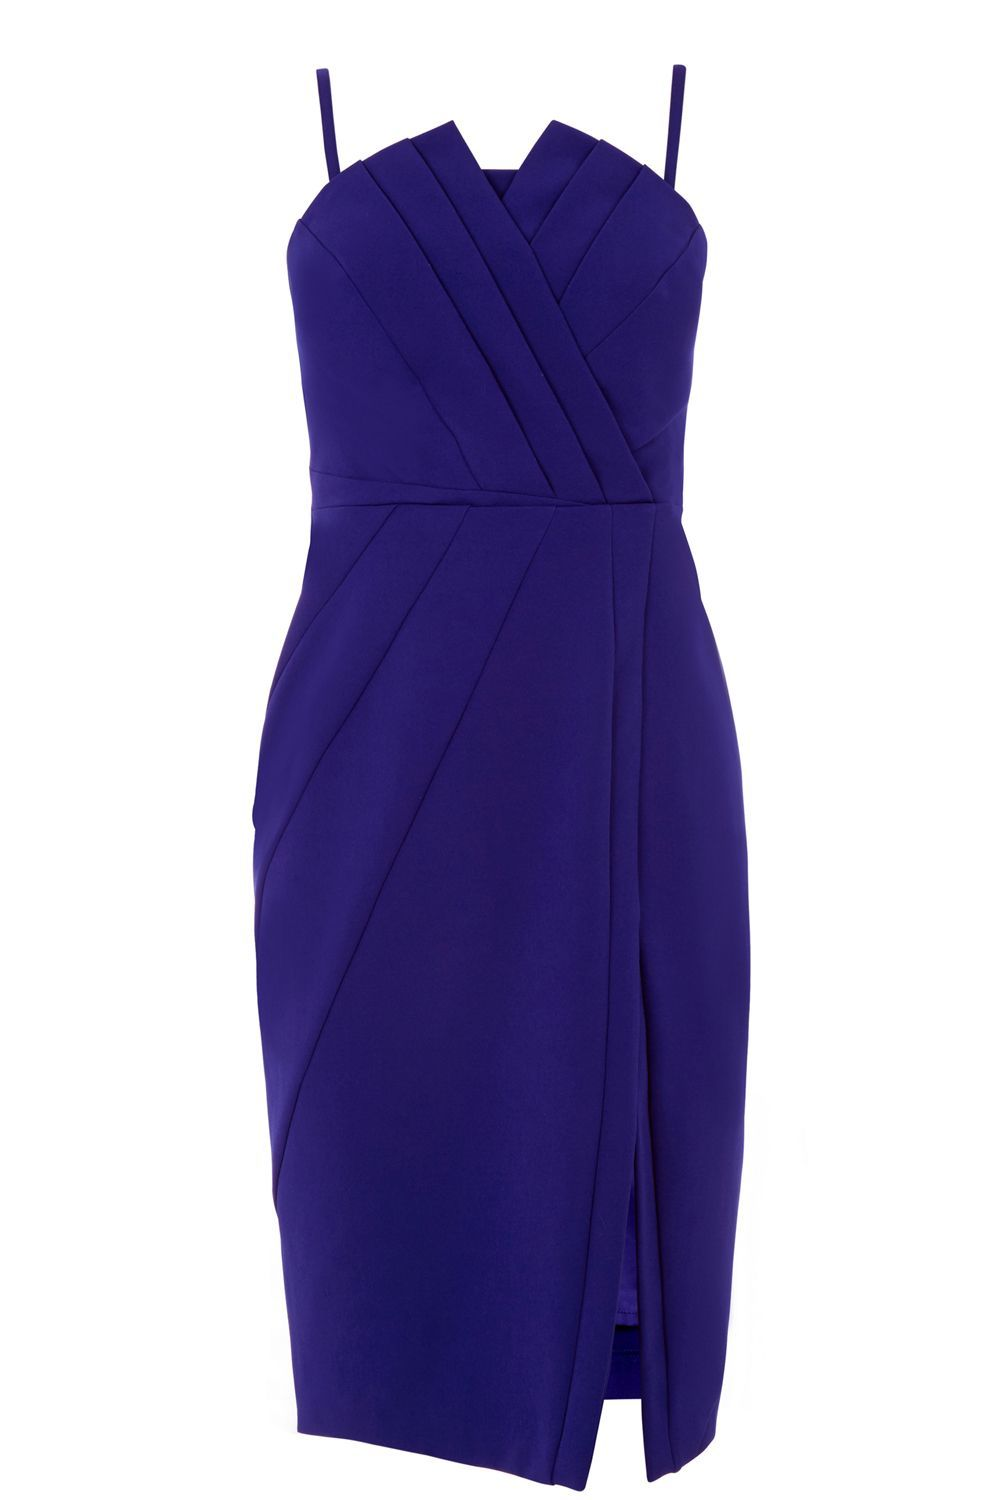 Structured Bandeau Dress, Blue - style: faux wrap/wrap; neckline: v-neck; fit: tight; pattern: plain; sleeve style: sleeveless; waist detail: fitted waist; hip detail: draws attention to hips; bust detail: subtle bust detail; predominant colour: navy; occasions: evening; length: on the knee; fibres: polyester/polyamide - 100%; sleeve length: sleeveless; texture group: crepes; pattern type: fabric; season: s/s 2016; wardrobe: event